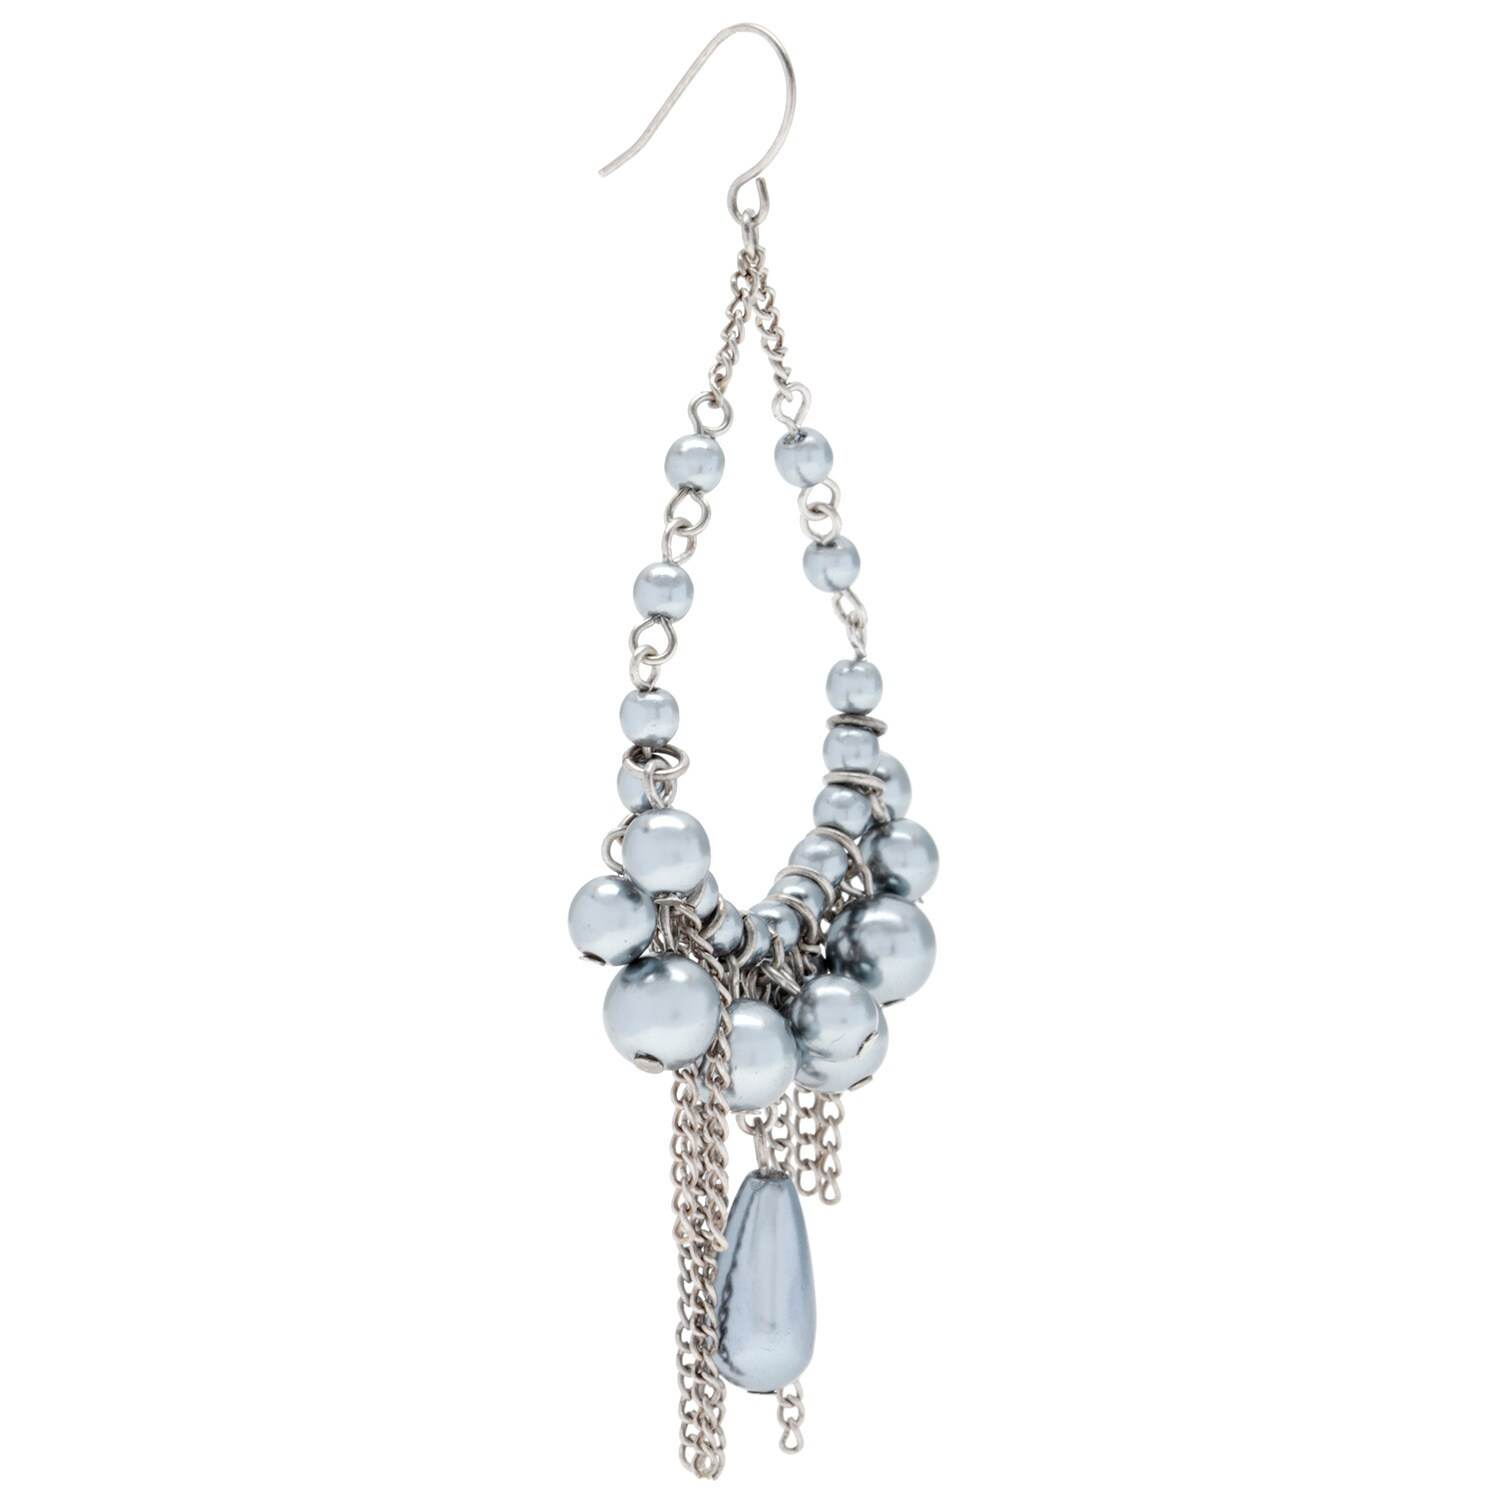 Alexa starr cream pearl chandelier earrings with burnished gold picture 10 of 10 arubaitofo Image collections